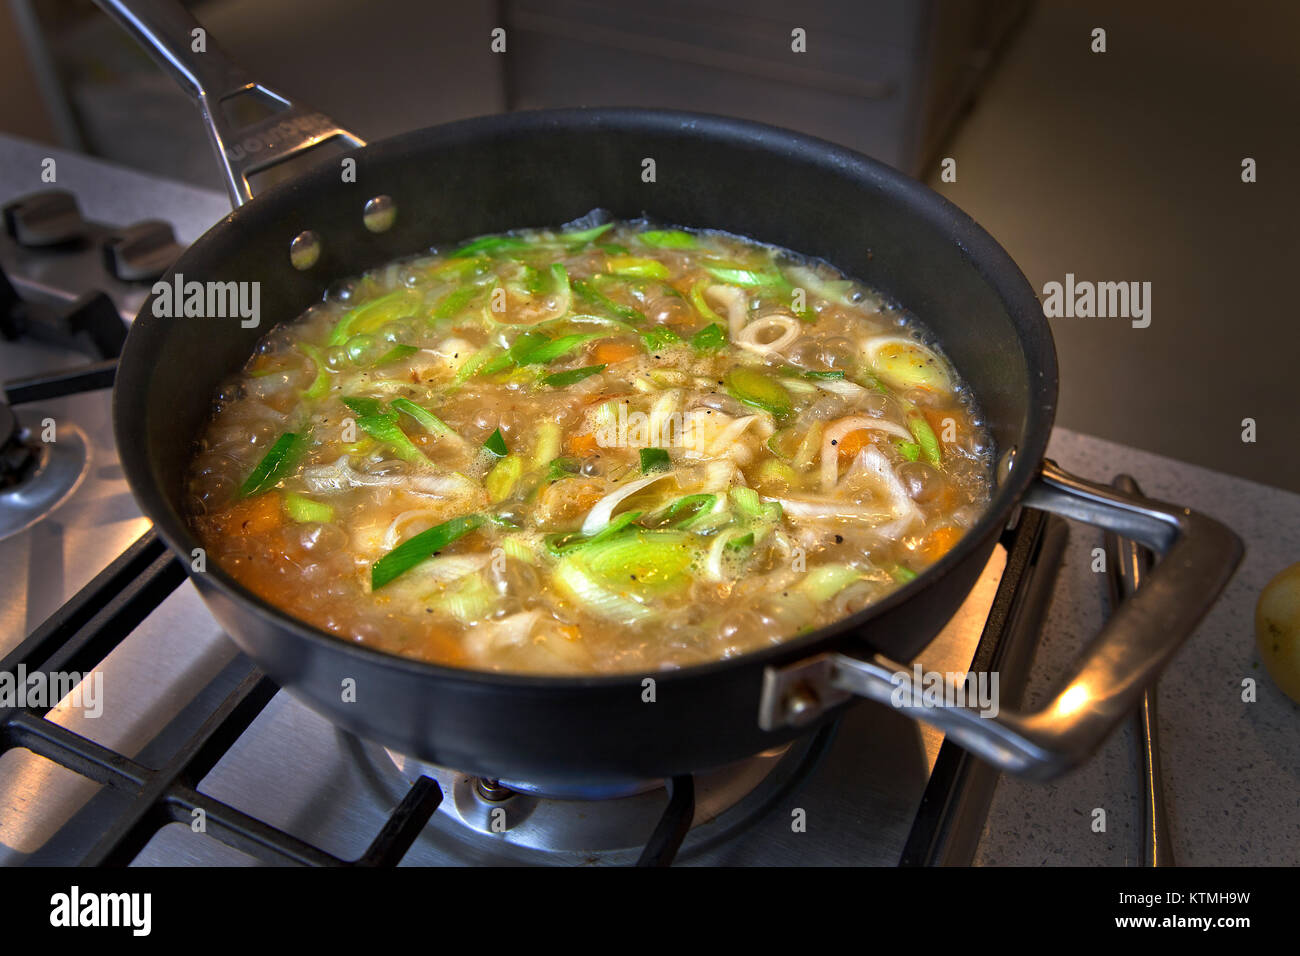 Vegetable soup simmering in pan on hob - Stock Image